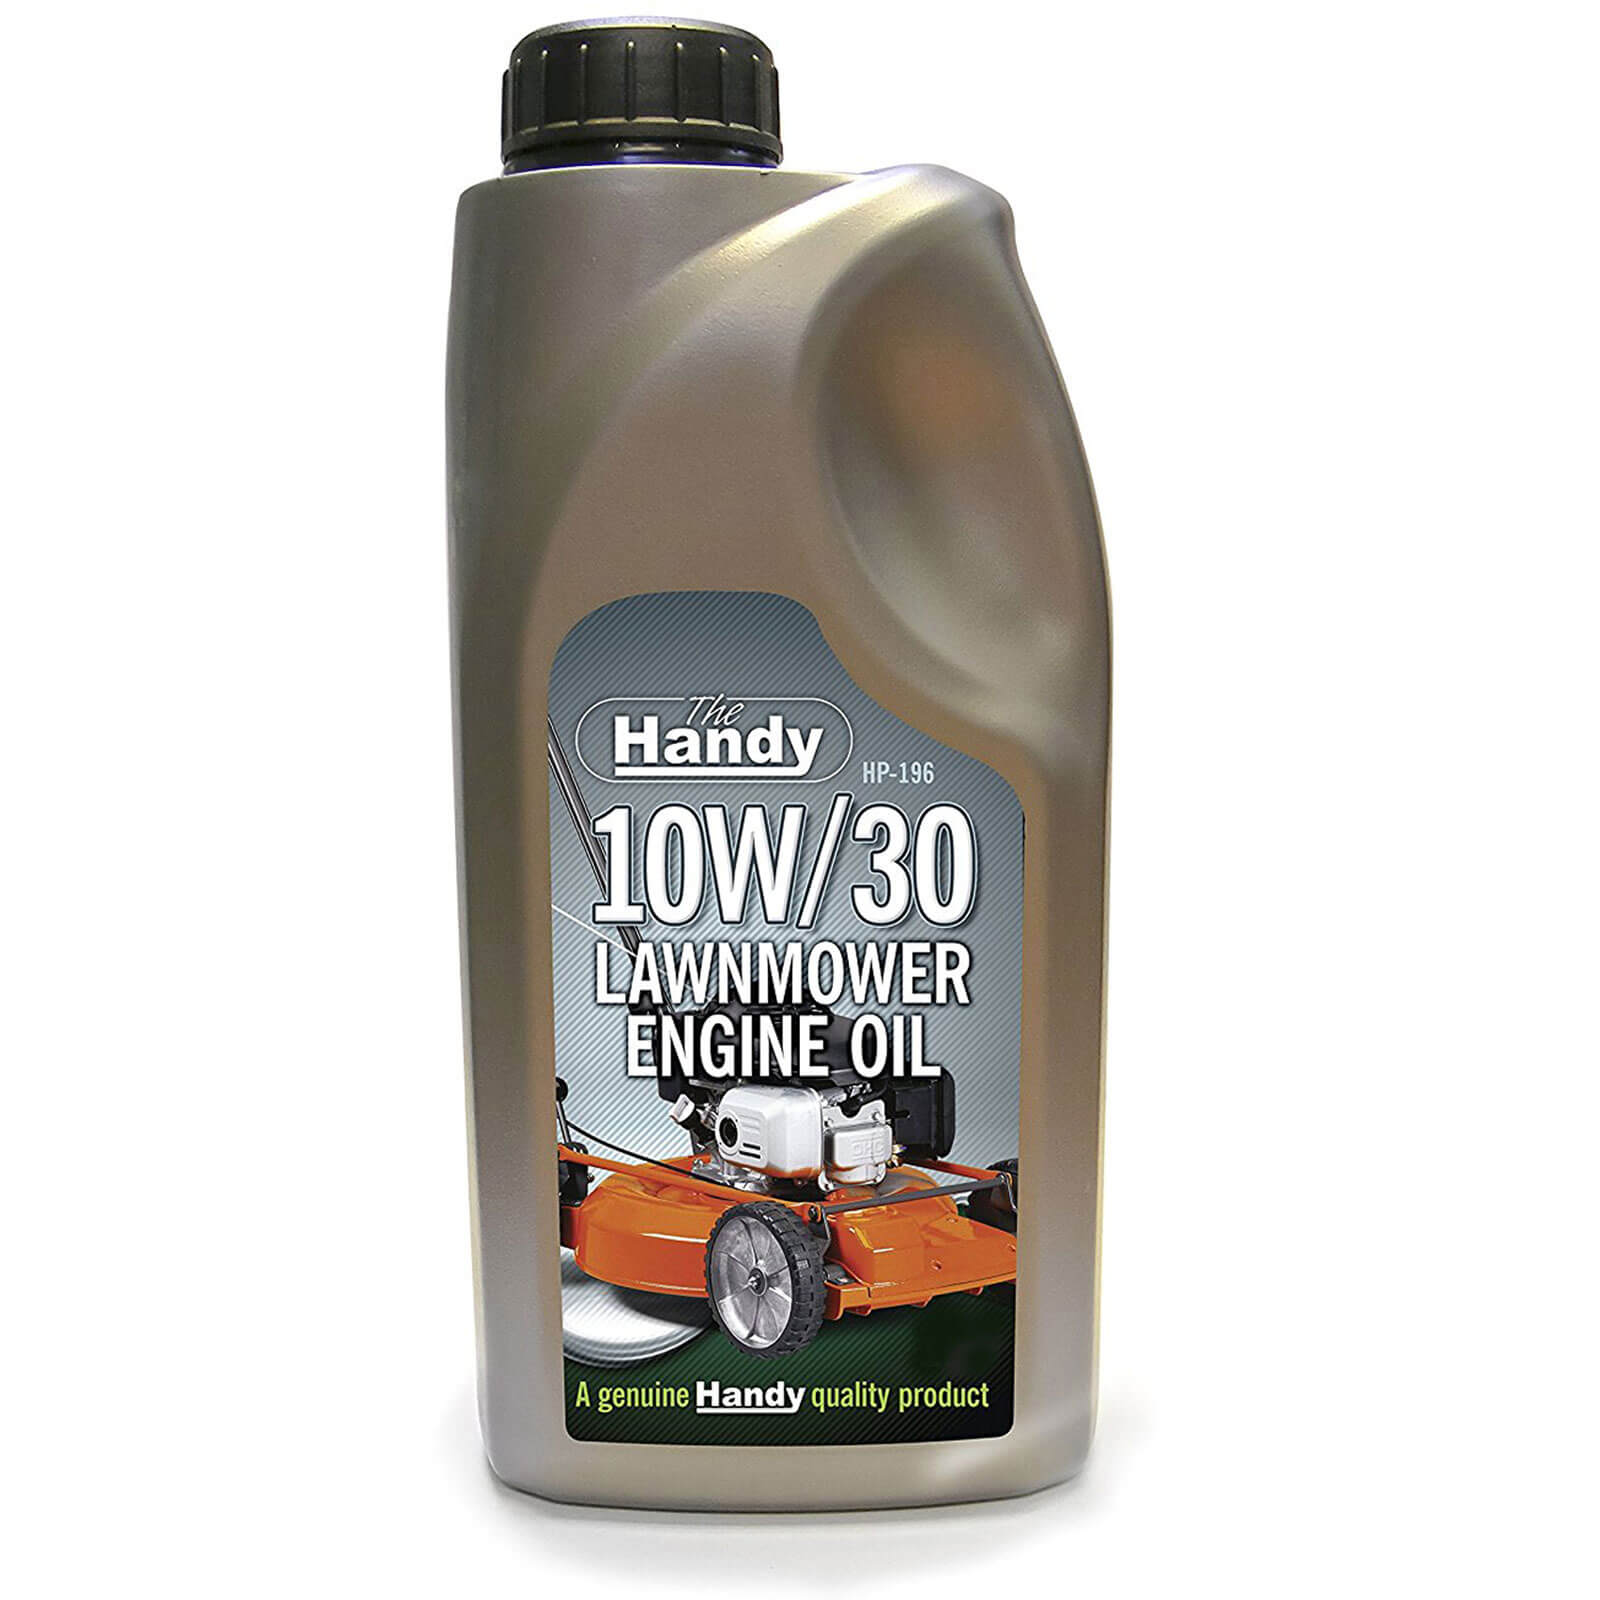 Image of Handy 10W/30 Lawnmower Engine Oil 1l